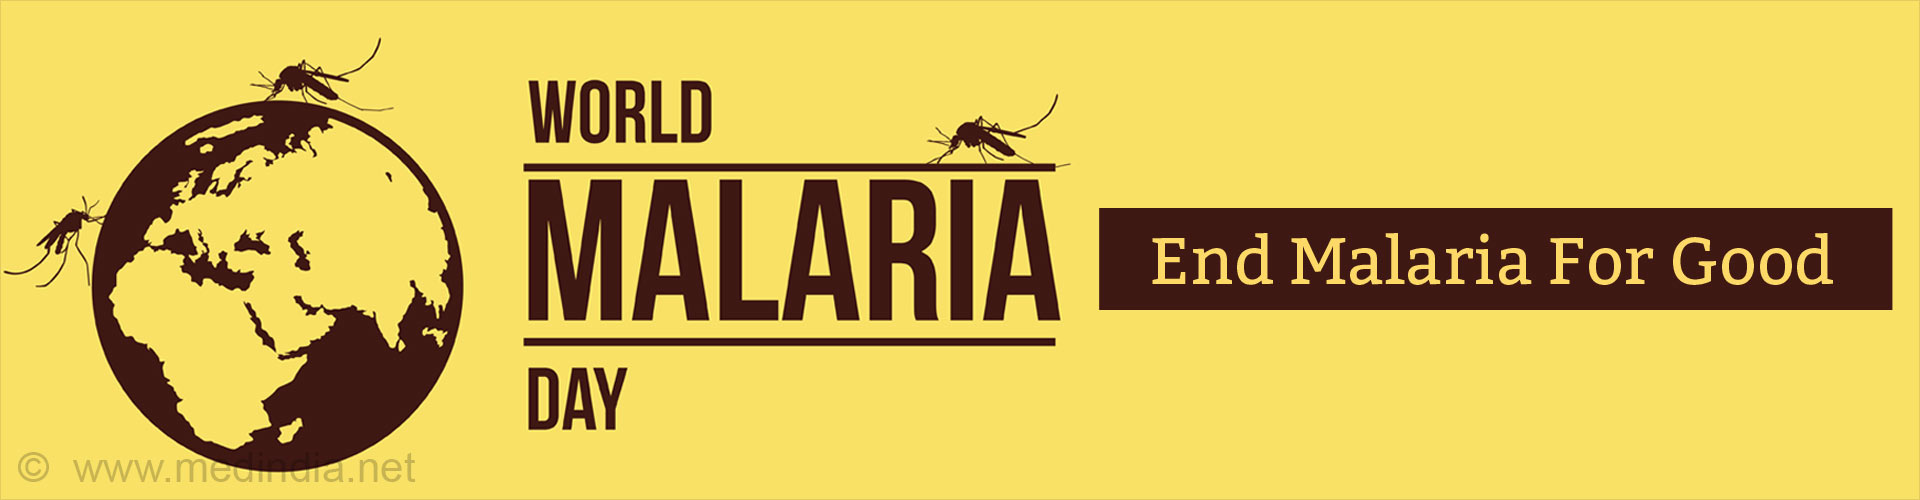 World Malaria Day 2017